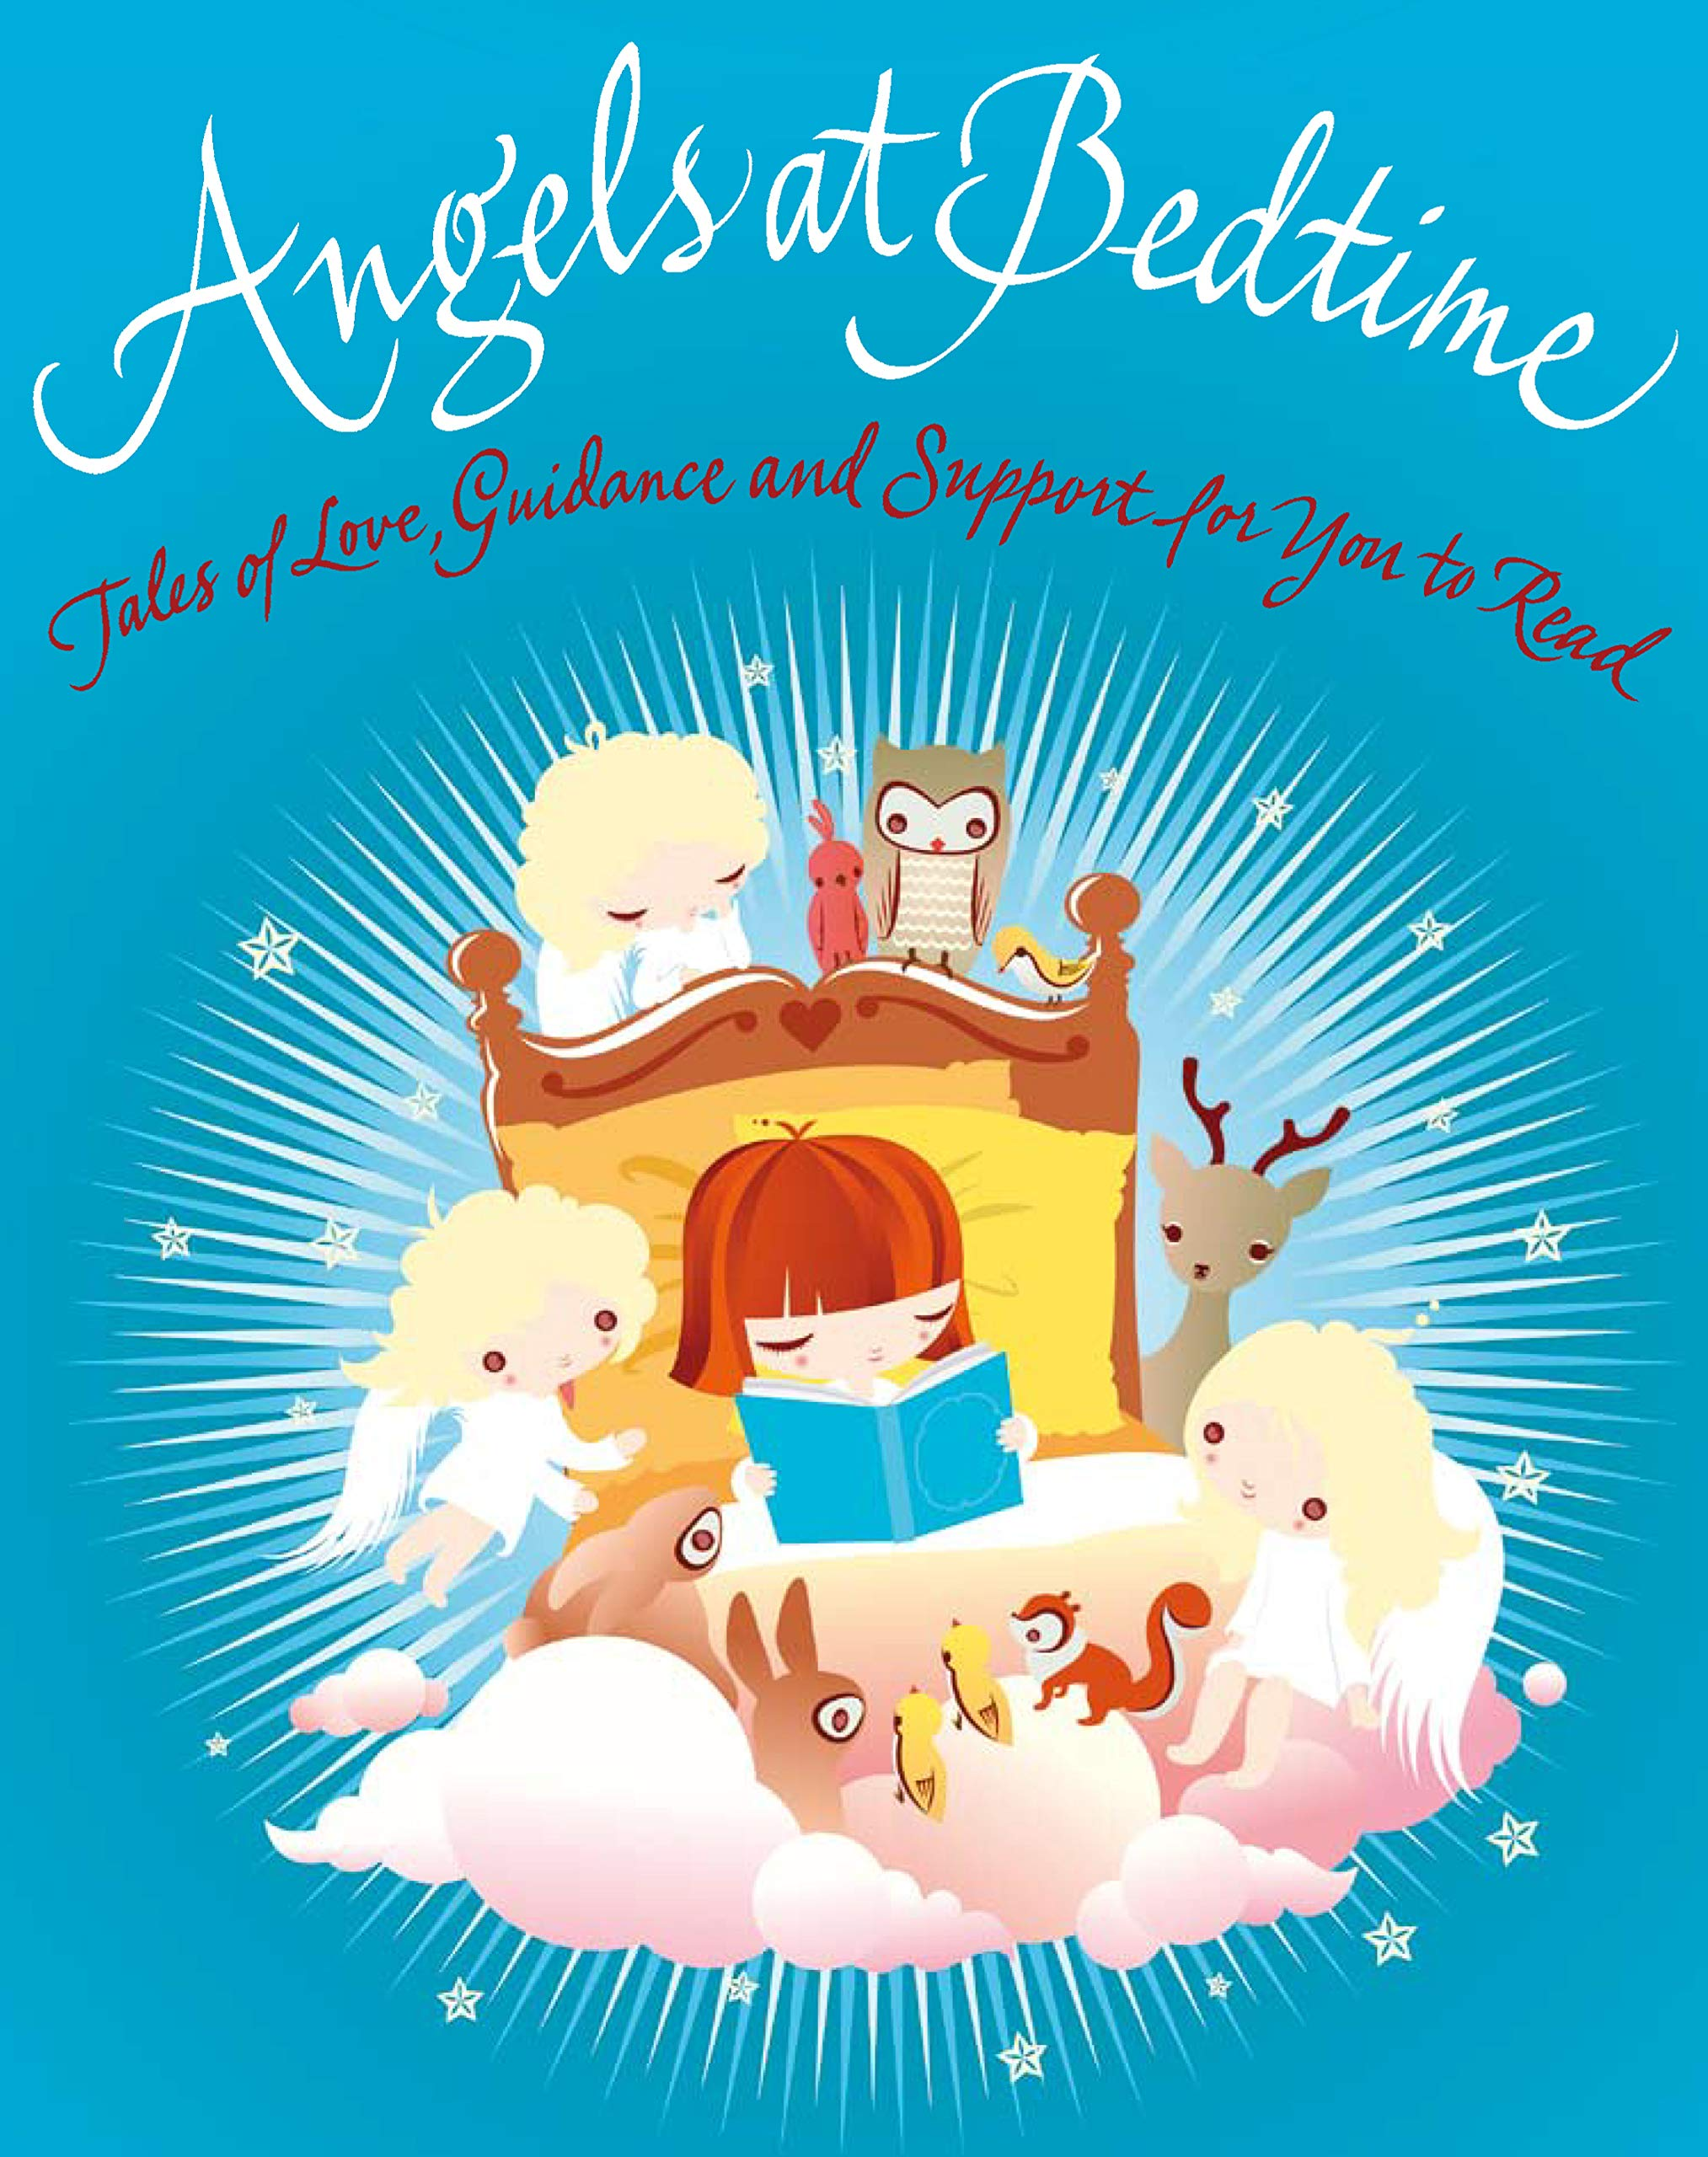 Download Angels at Bedtime: Tales of Love, Guidance and Support for You to Read with Your Child to Comfort, Calm and Heal PDF